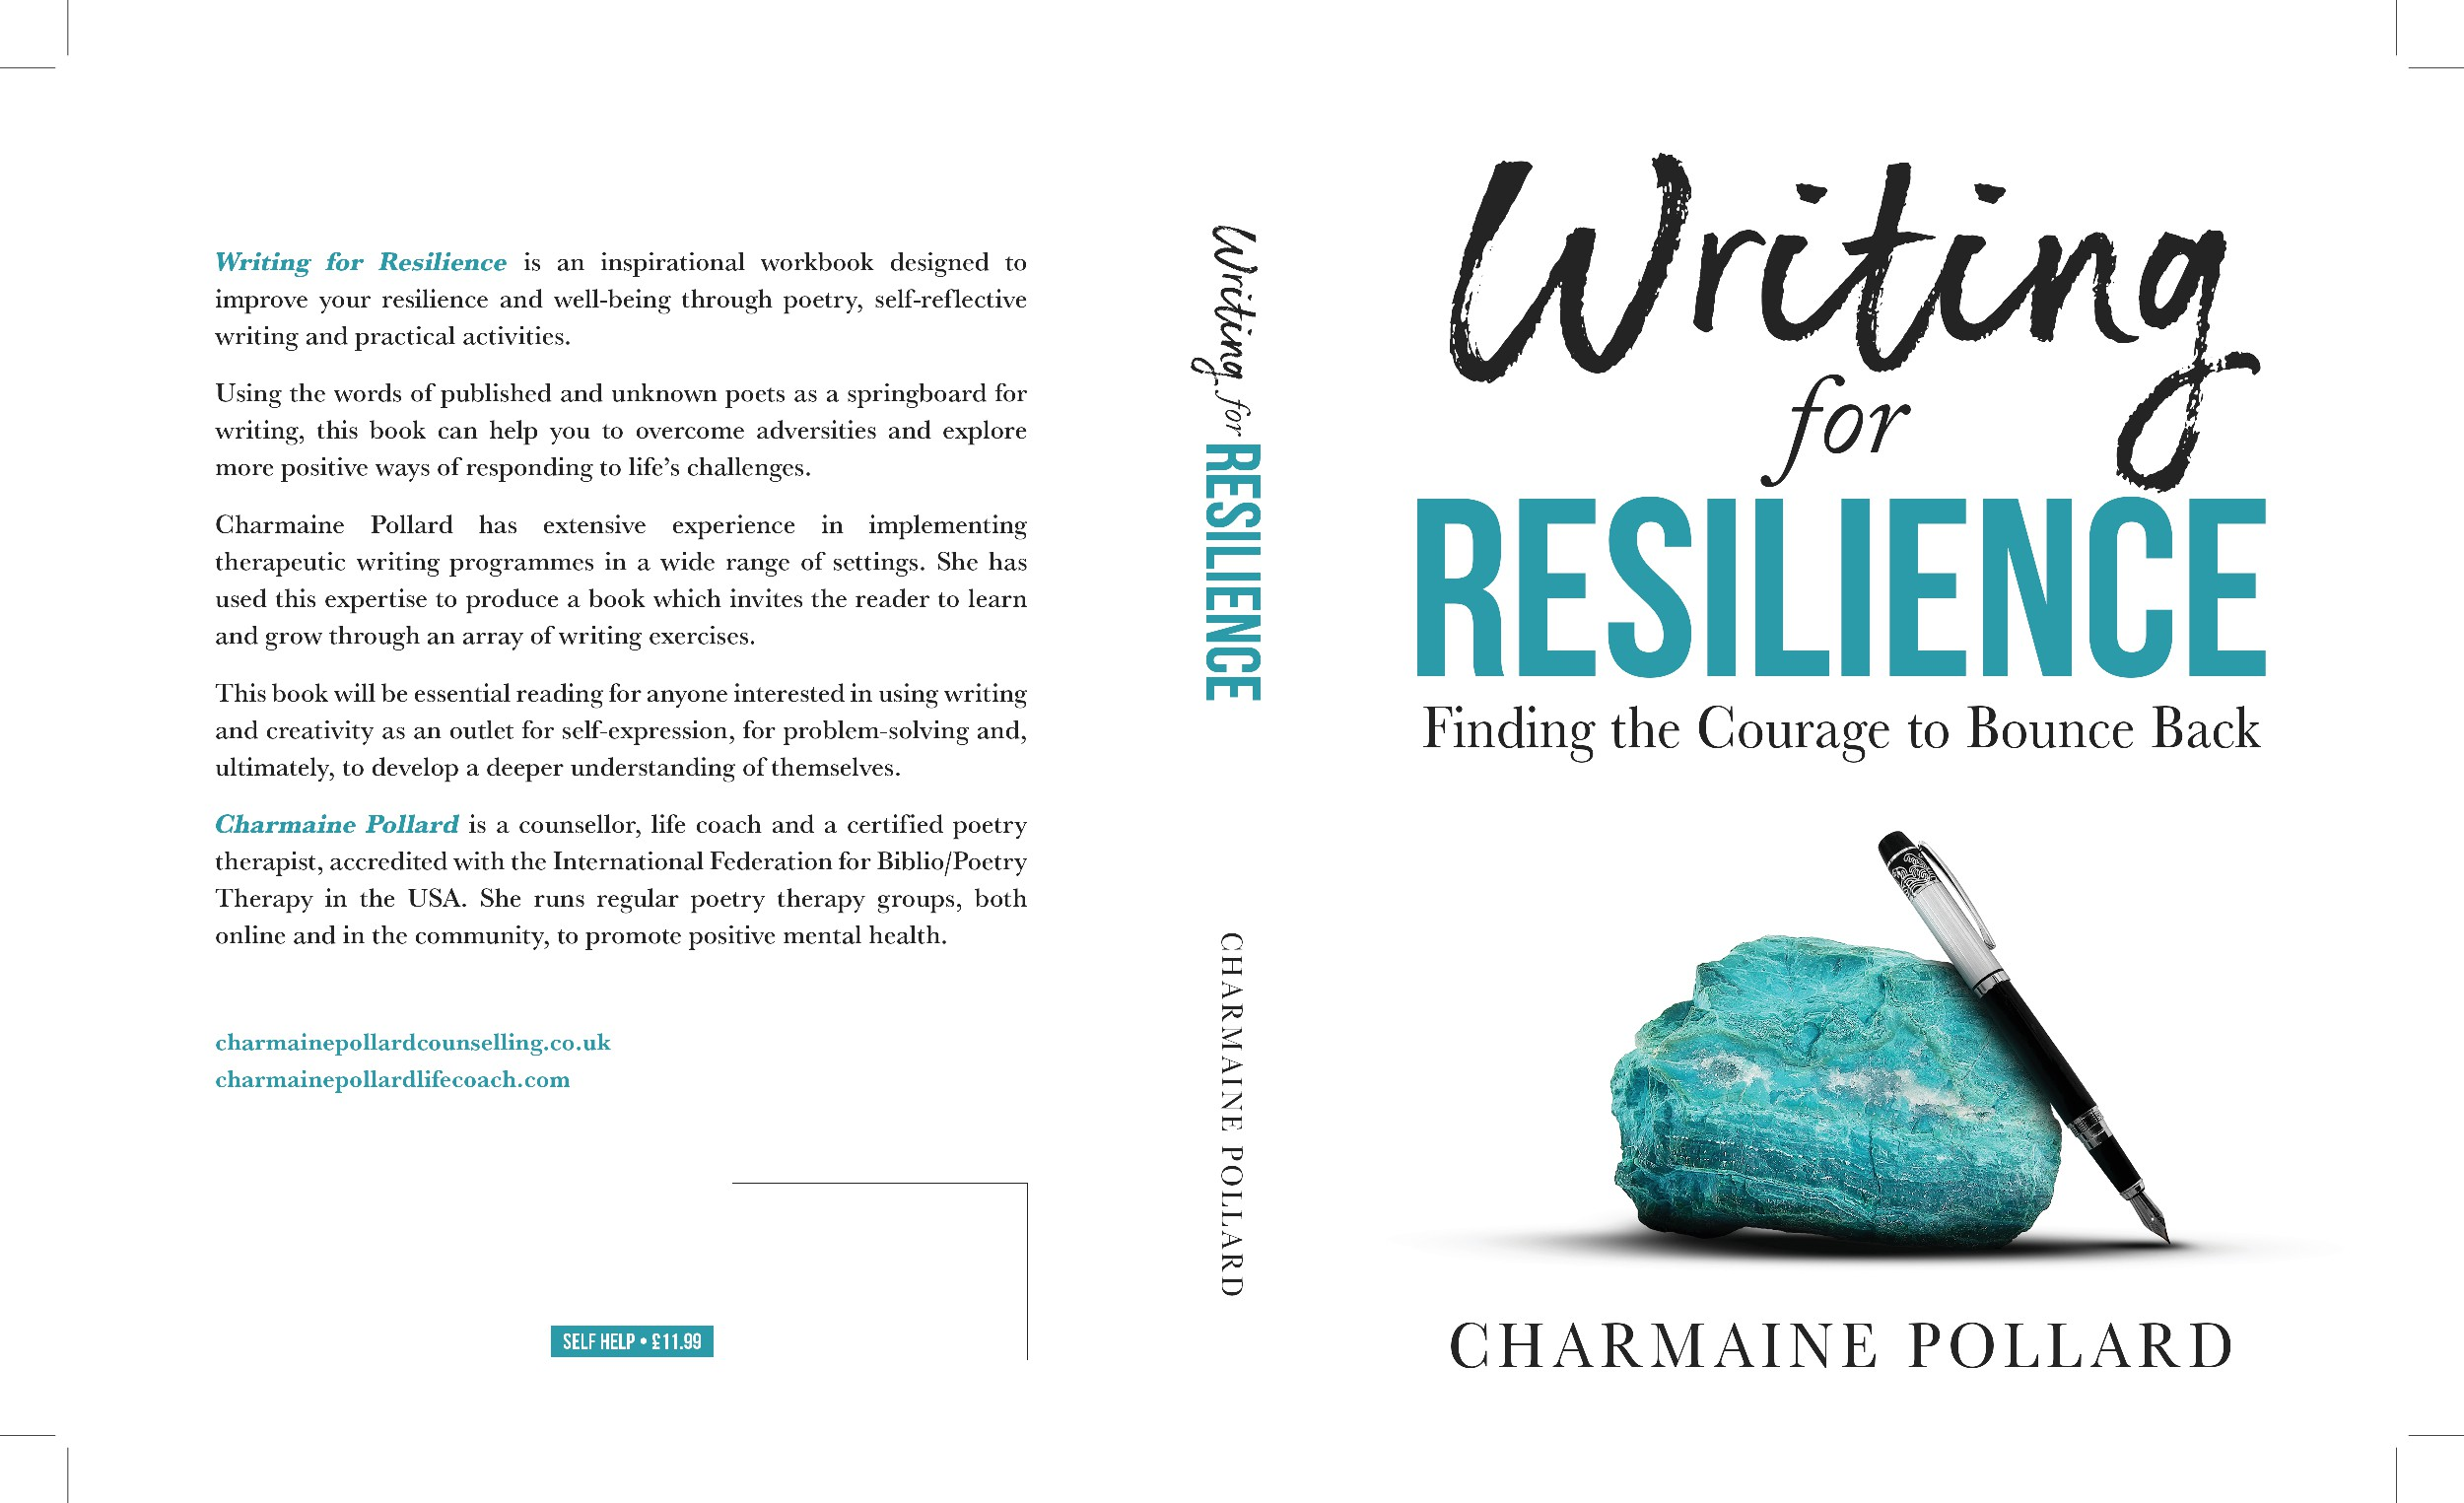 Author requires a stunning book cover for a resilience workbook